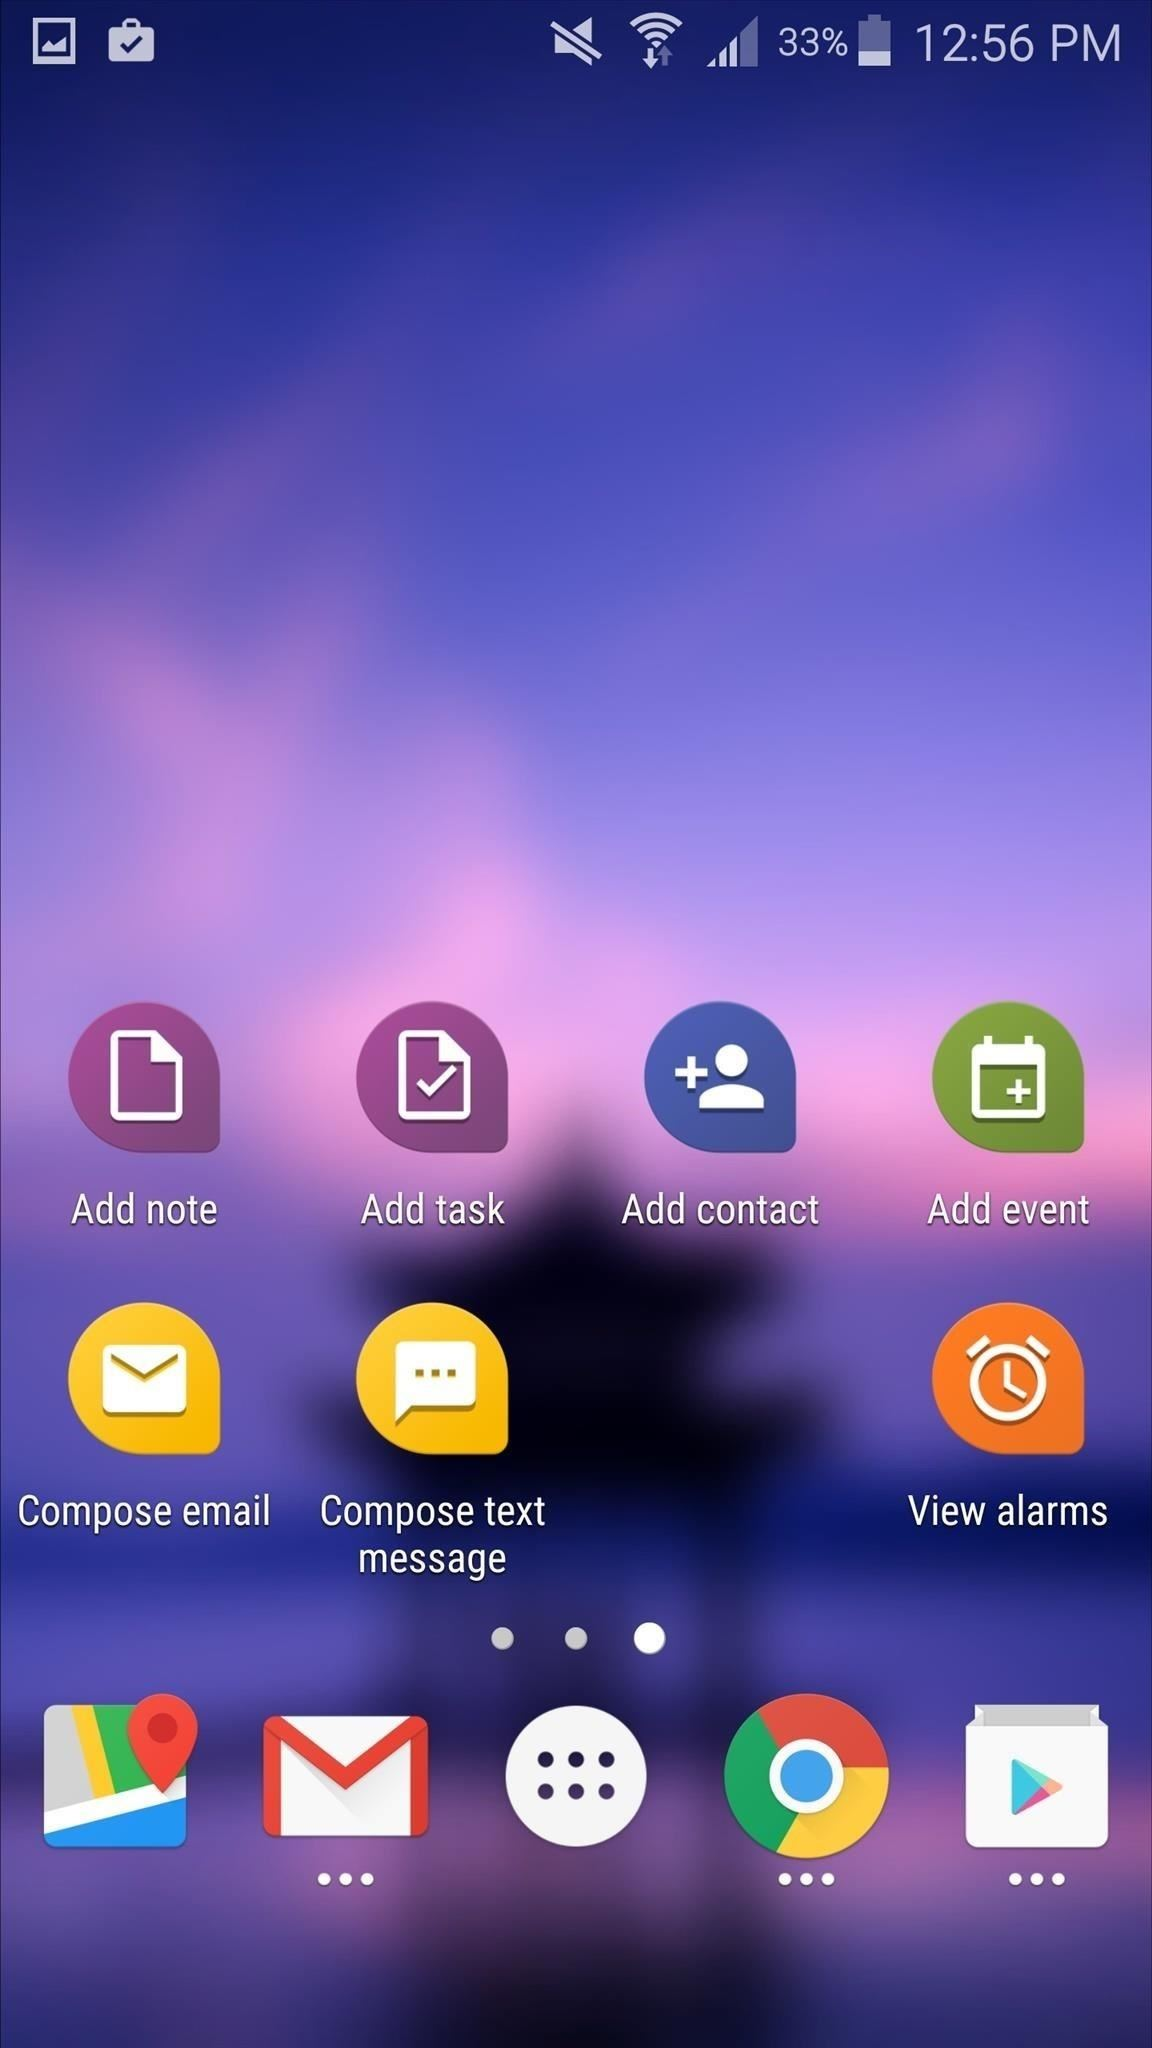 10 Awesome Android Apps You Won't Find on Google Play